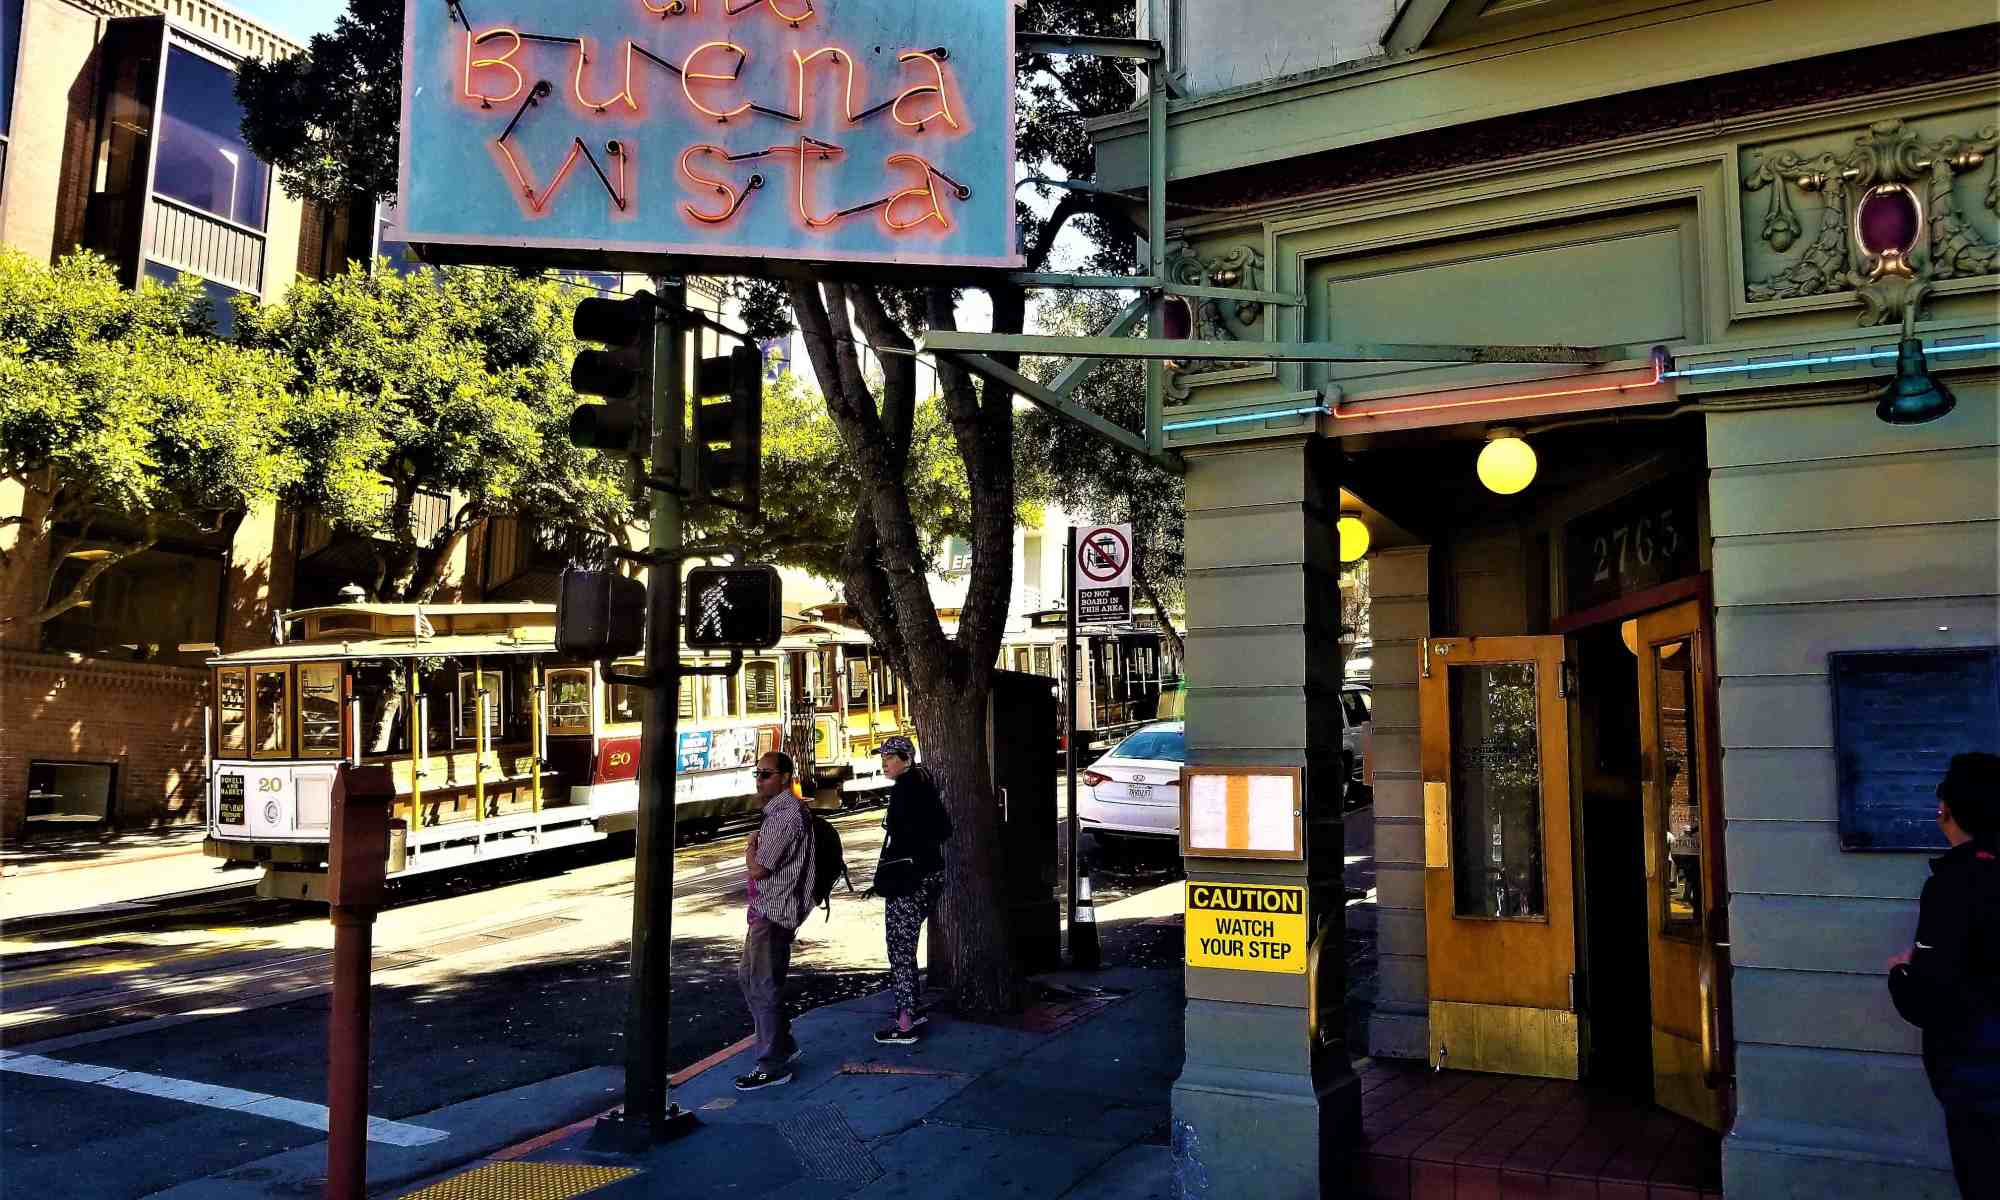 image-of-san-francisco-cafe-buena-vista-exterior